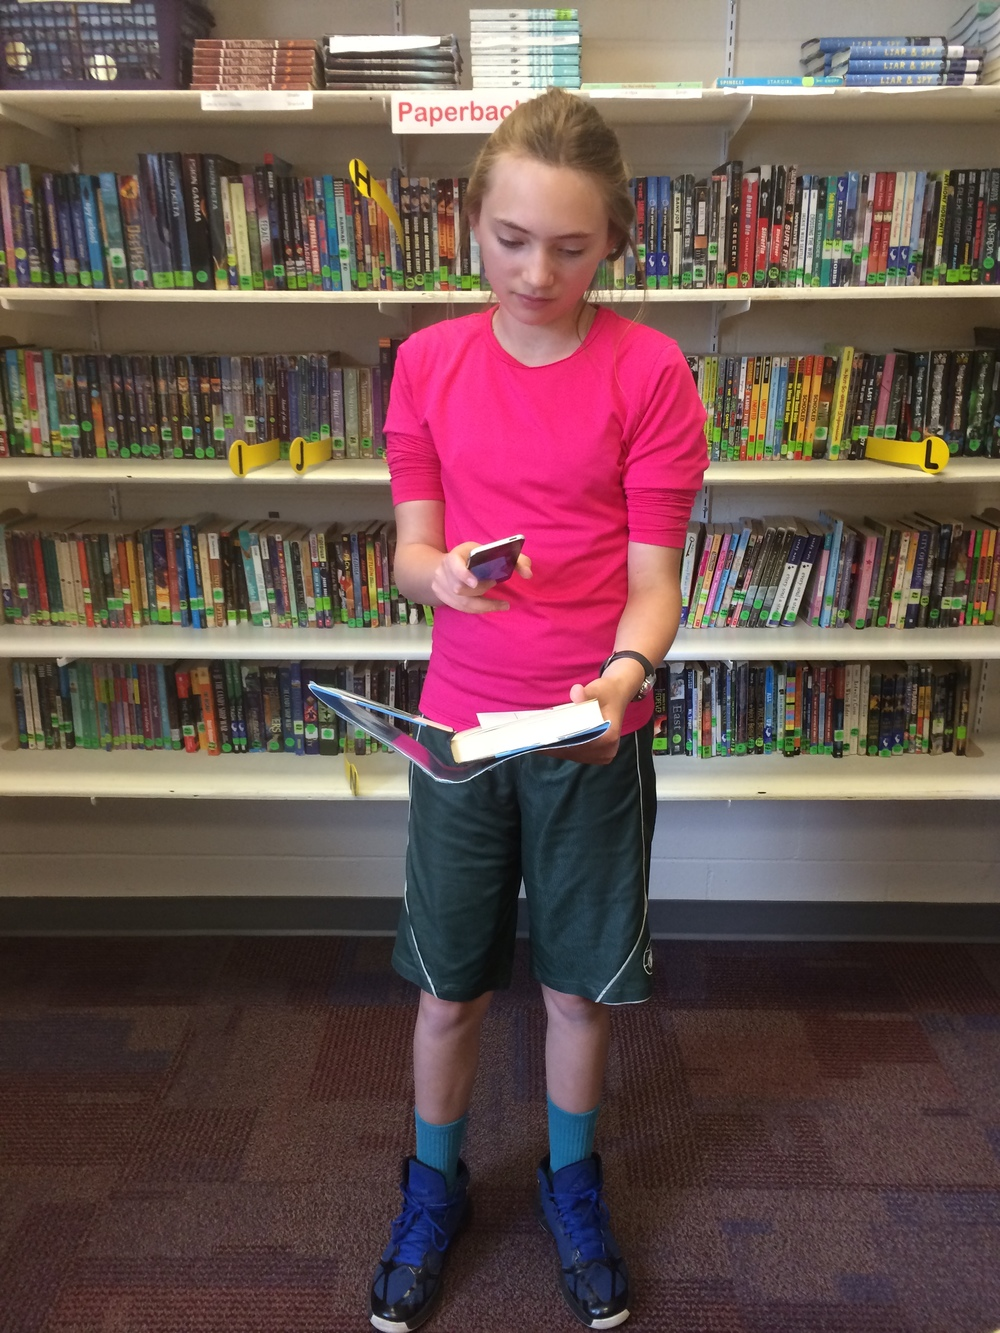 A student scans the QR code in a library book.